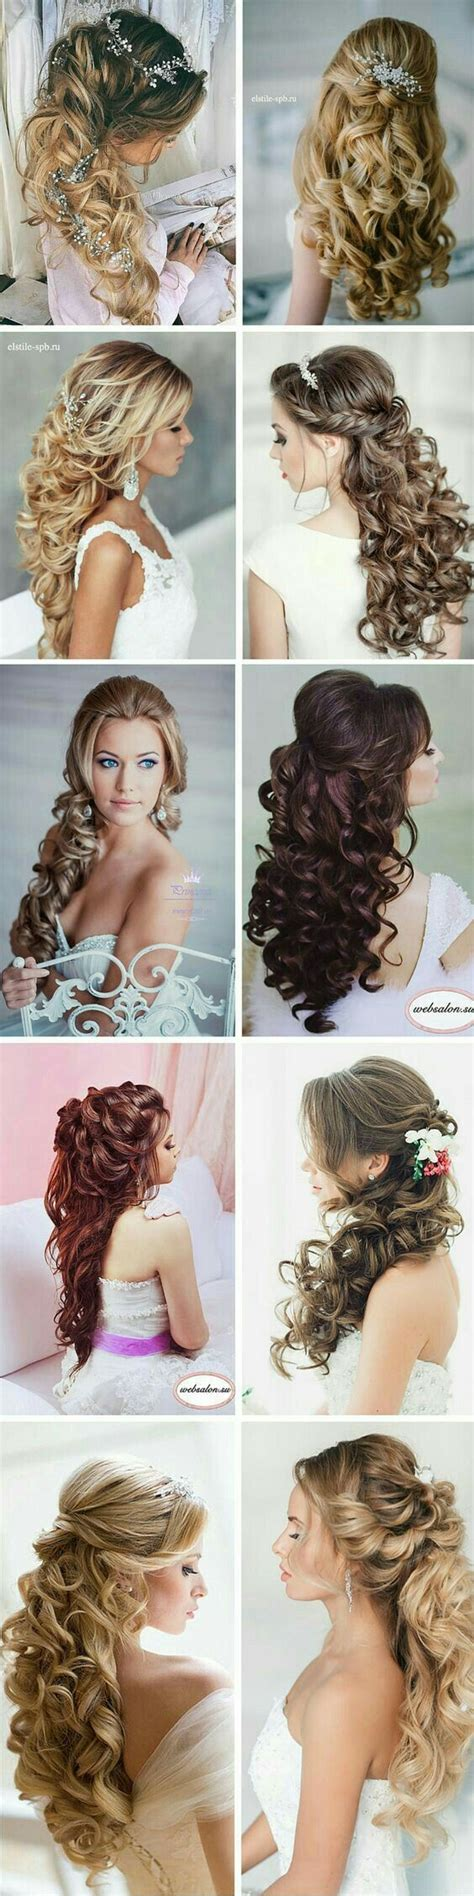 hairstyles for evening reception best 25 curly prom hairstyles ideas on pinterest curly